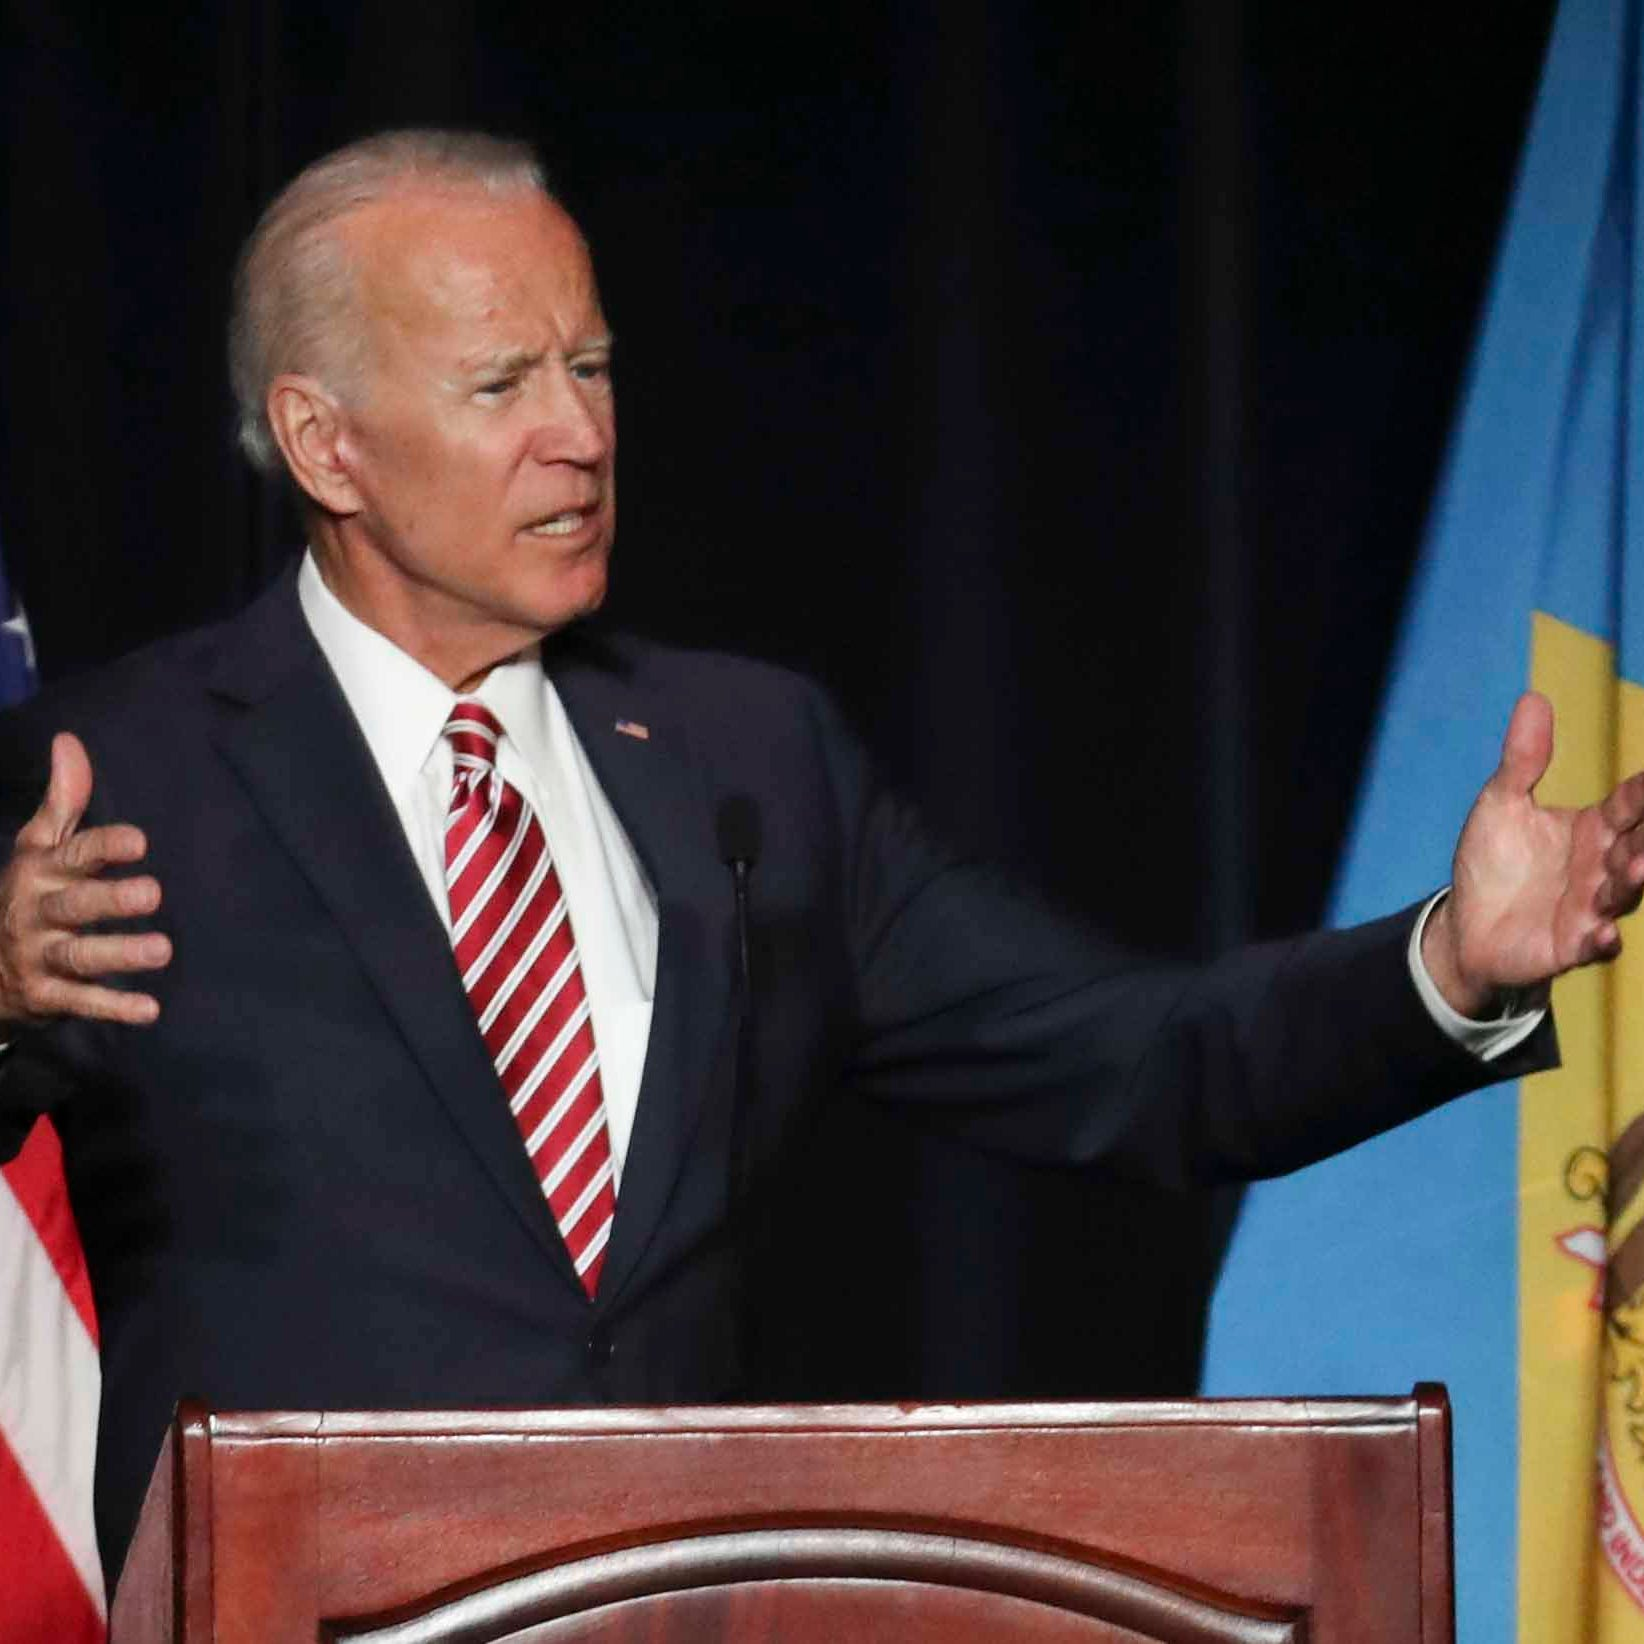 Trump targets Biden after verbal slip about 2020 presidential bid